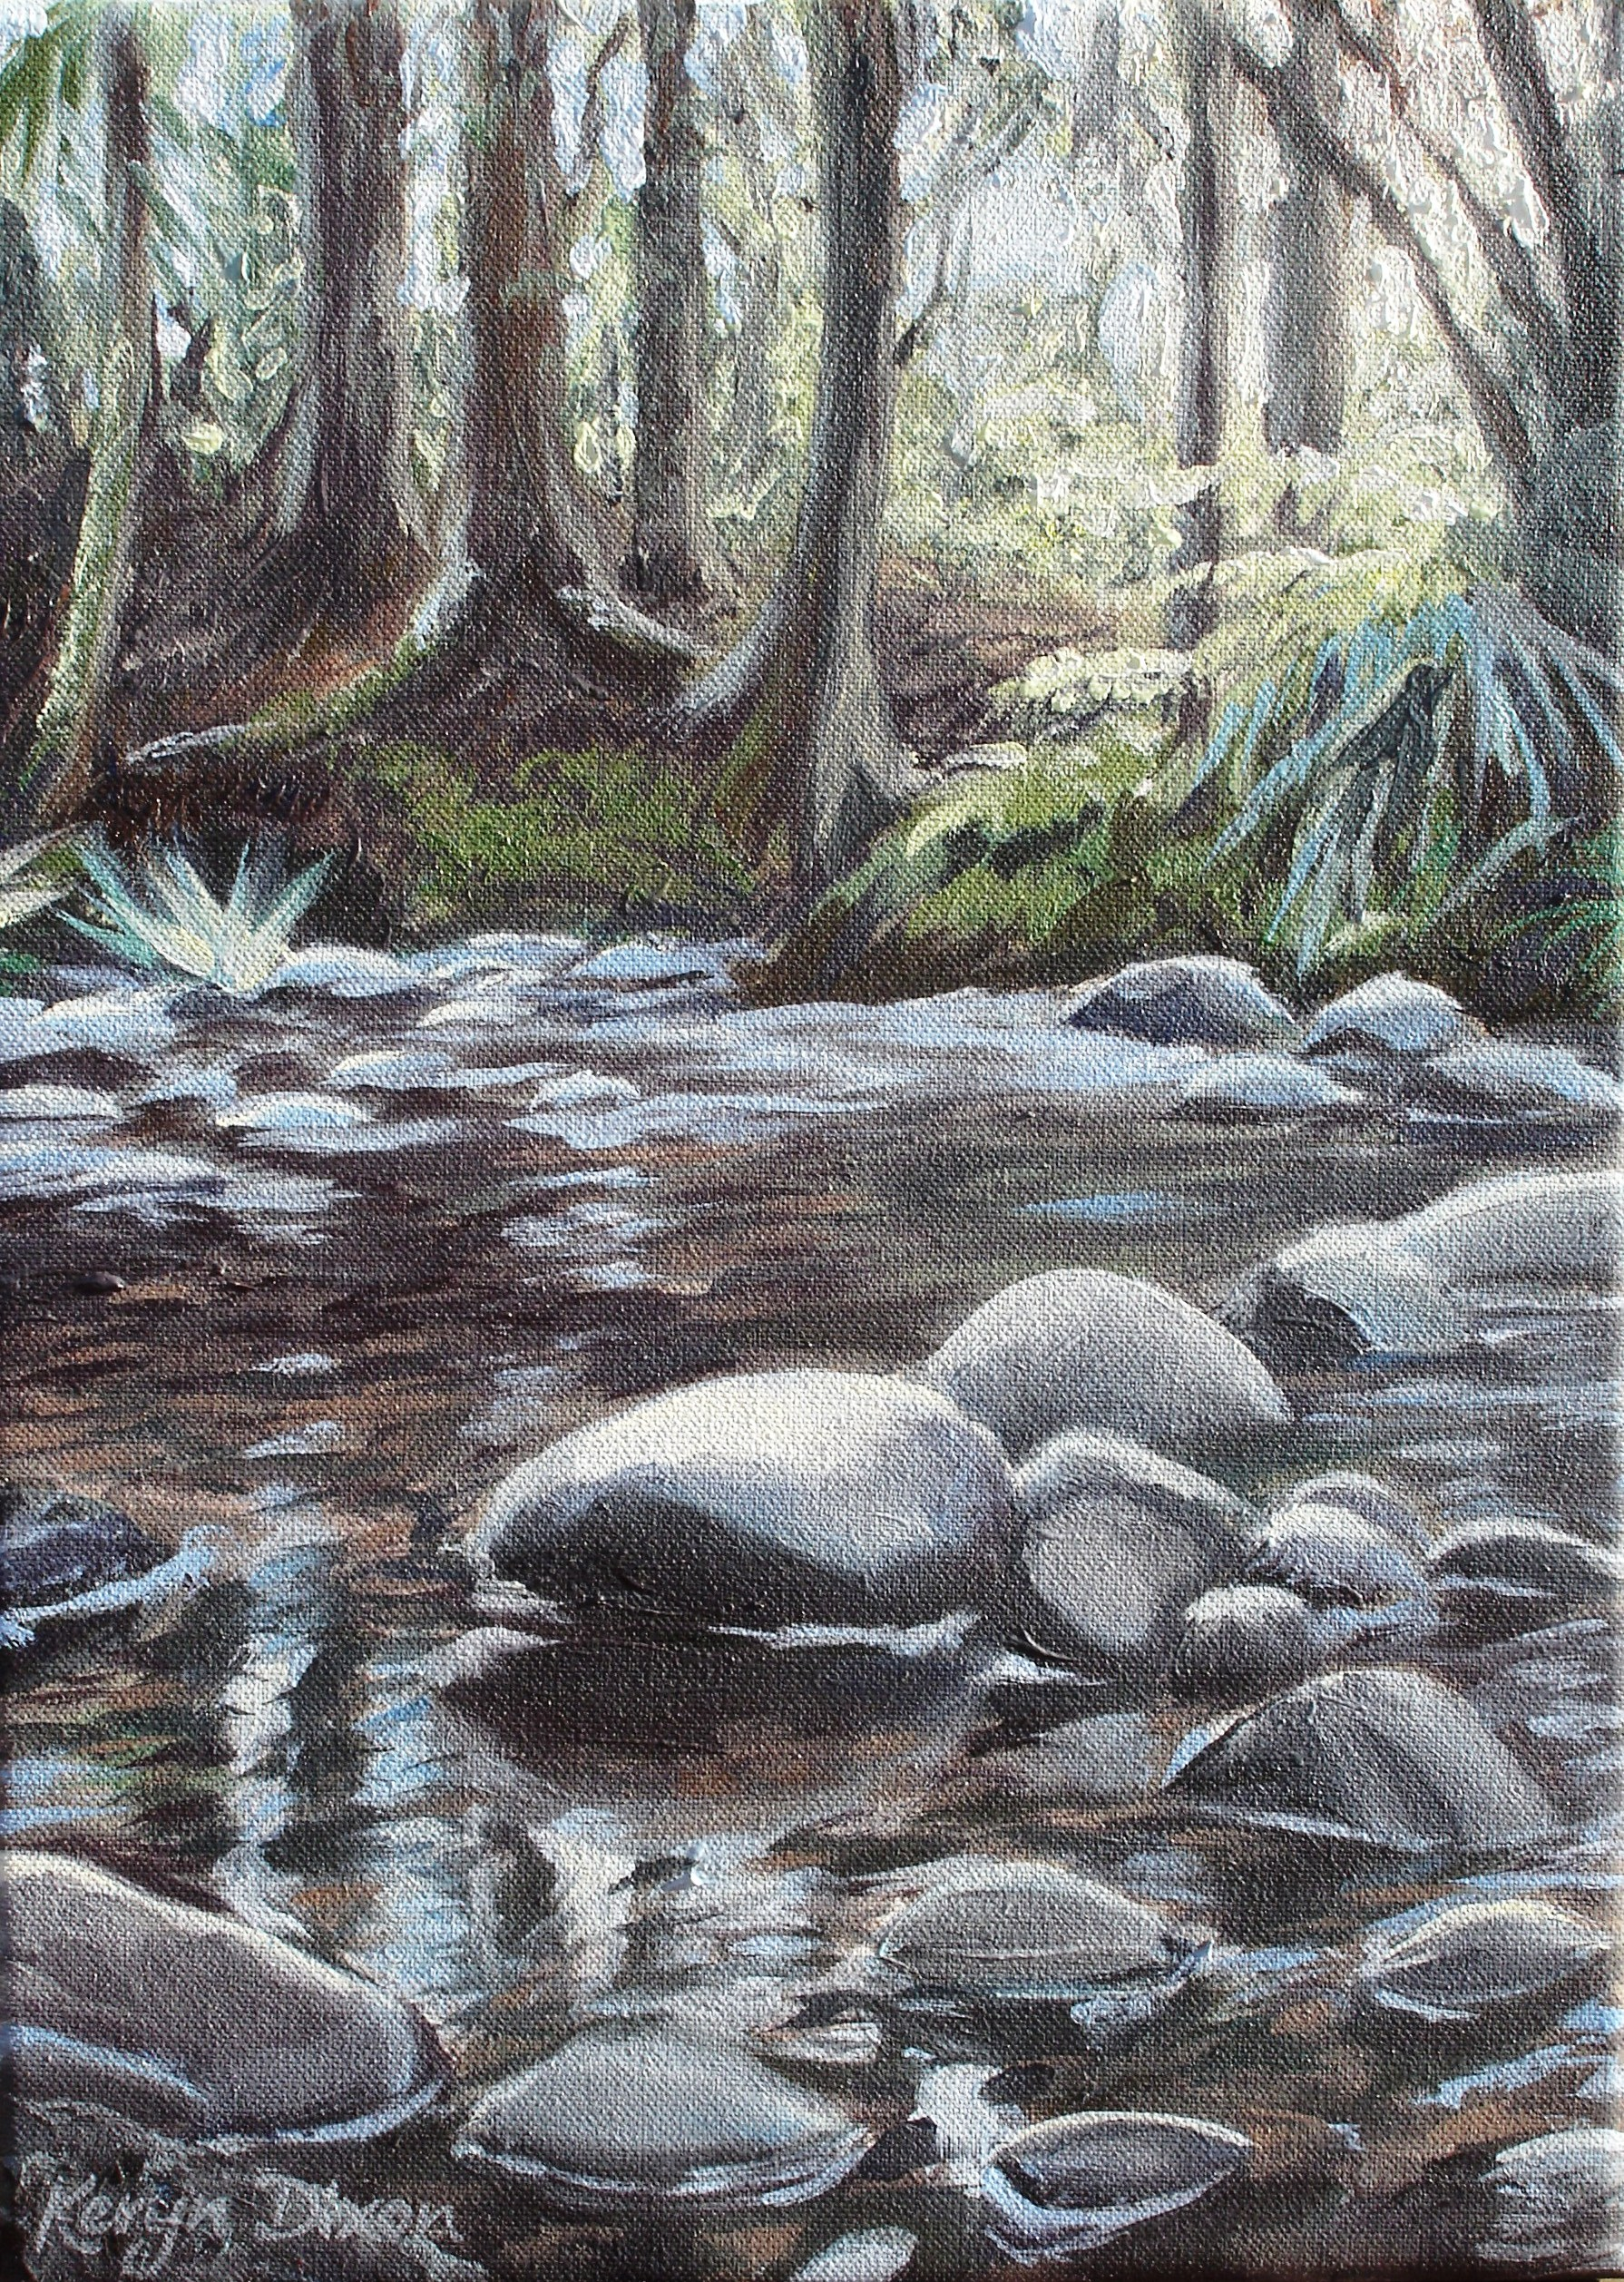 Bush and Stream  Oils on stretched canvas